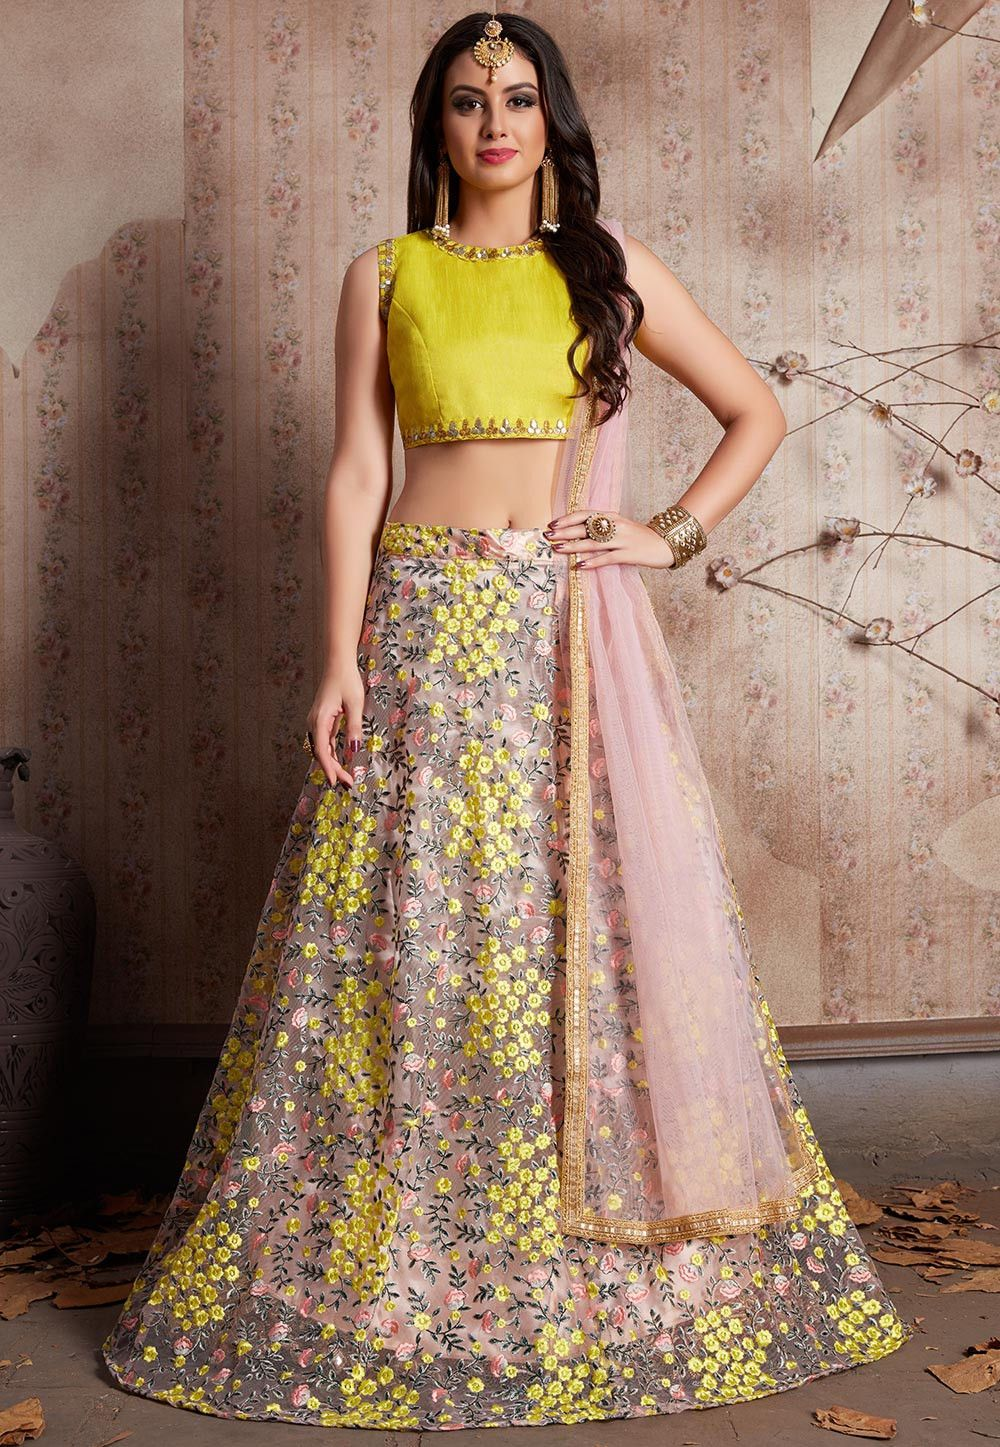 595fac72d1321 Buy bridal ♥ party lehengas   designer ghagra cholis online in awesome  designs   fabrics by India s best craftsmen!